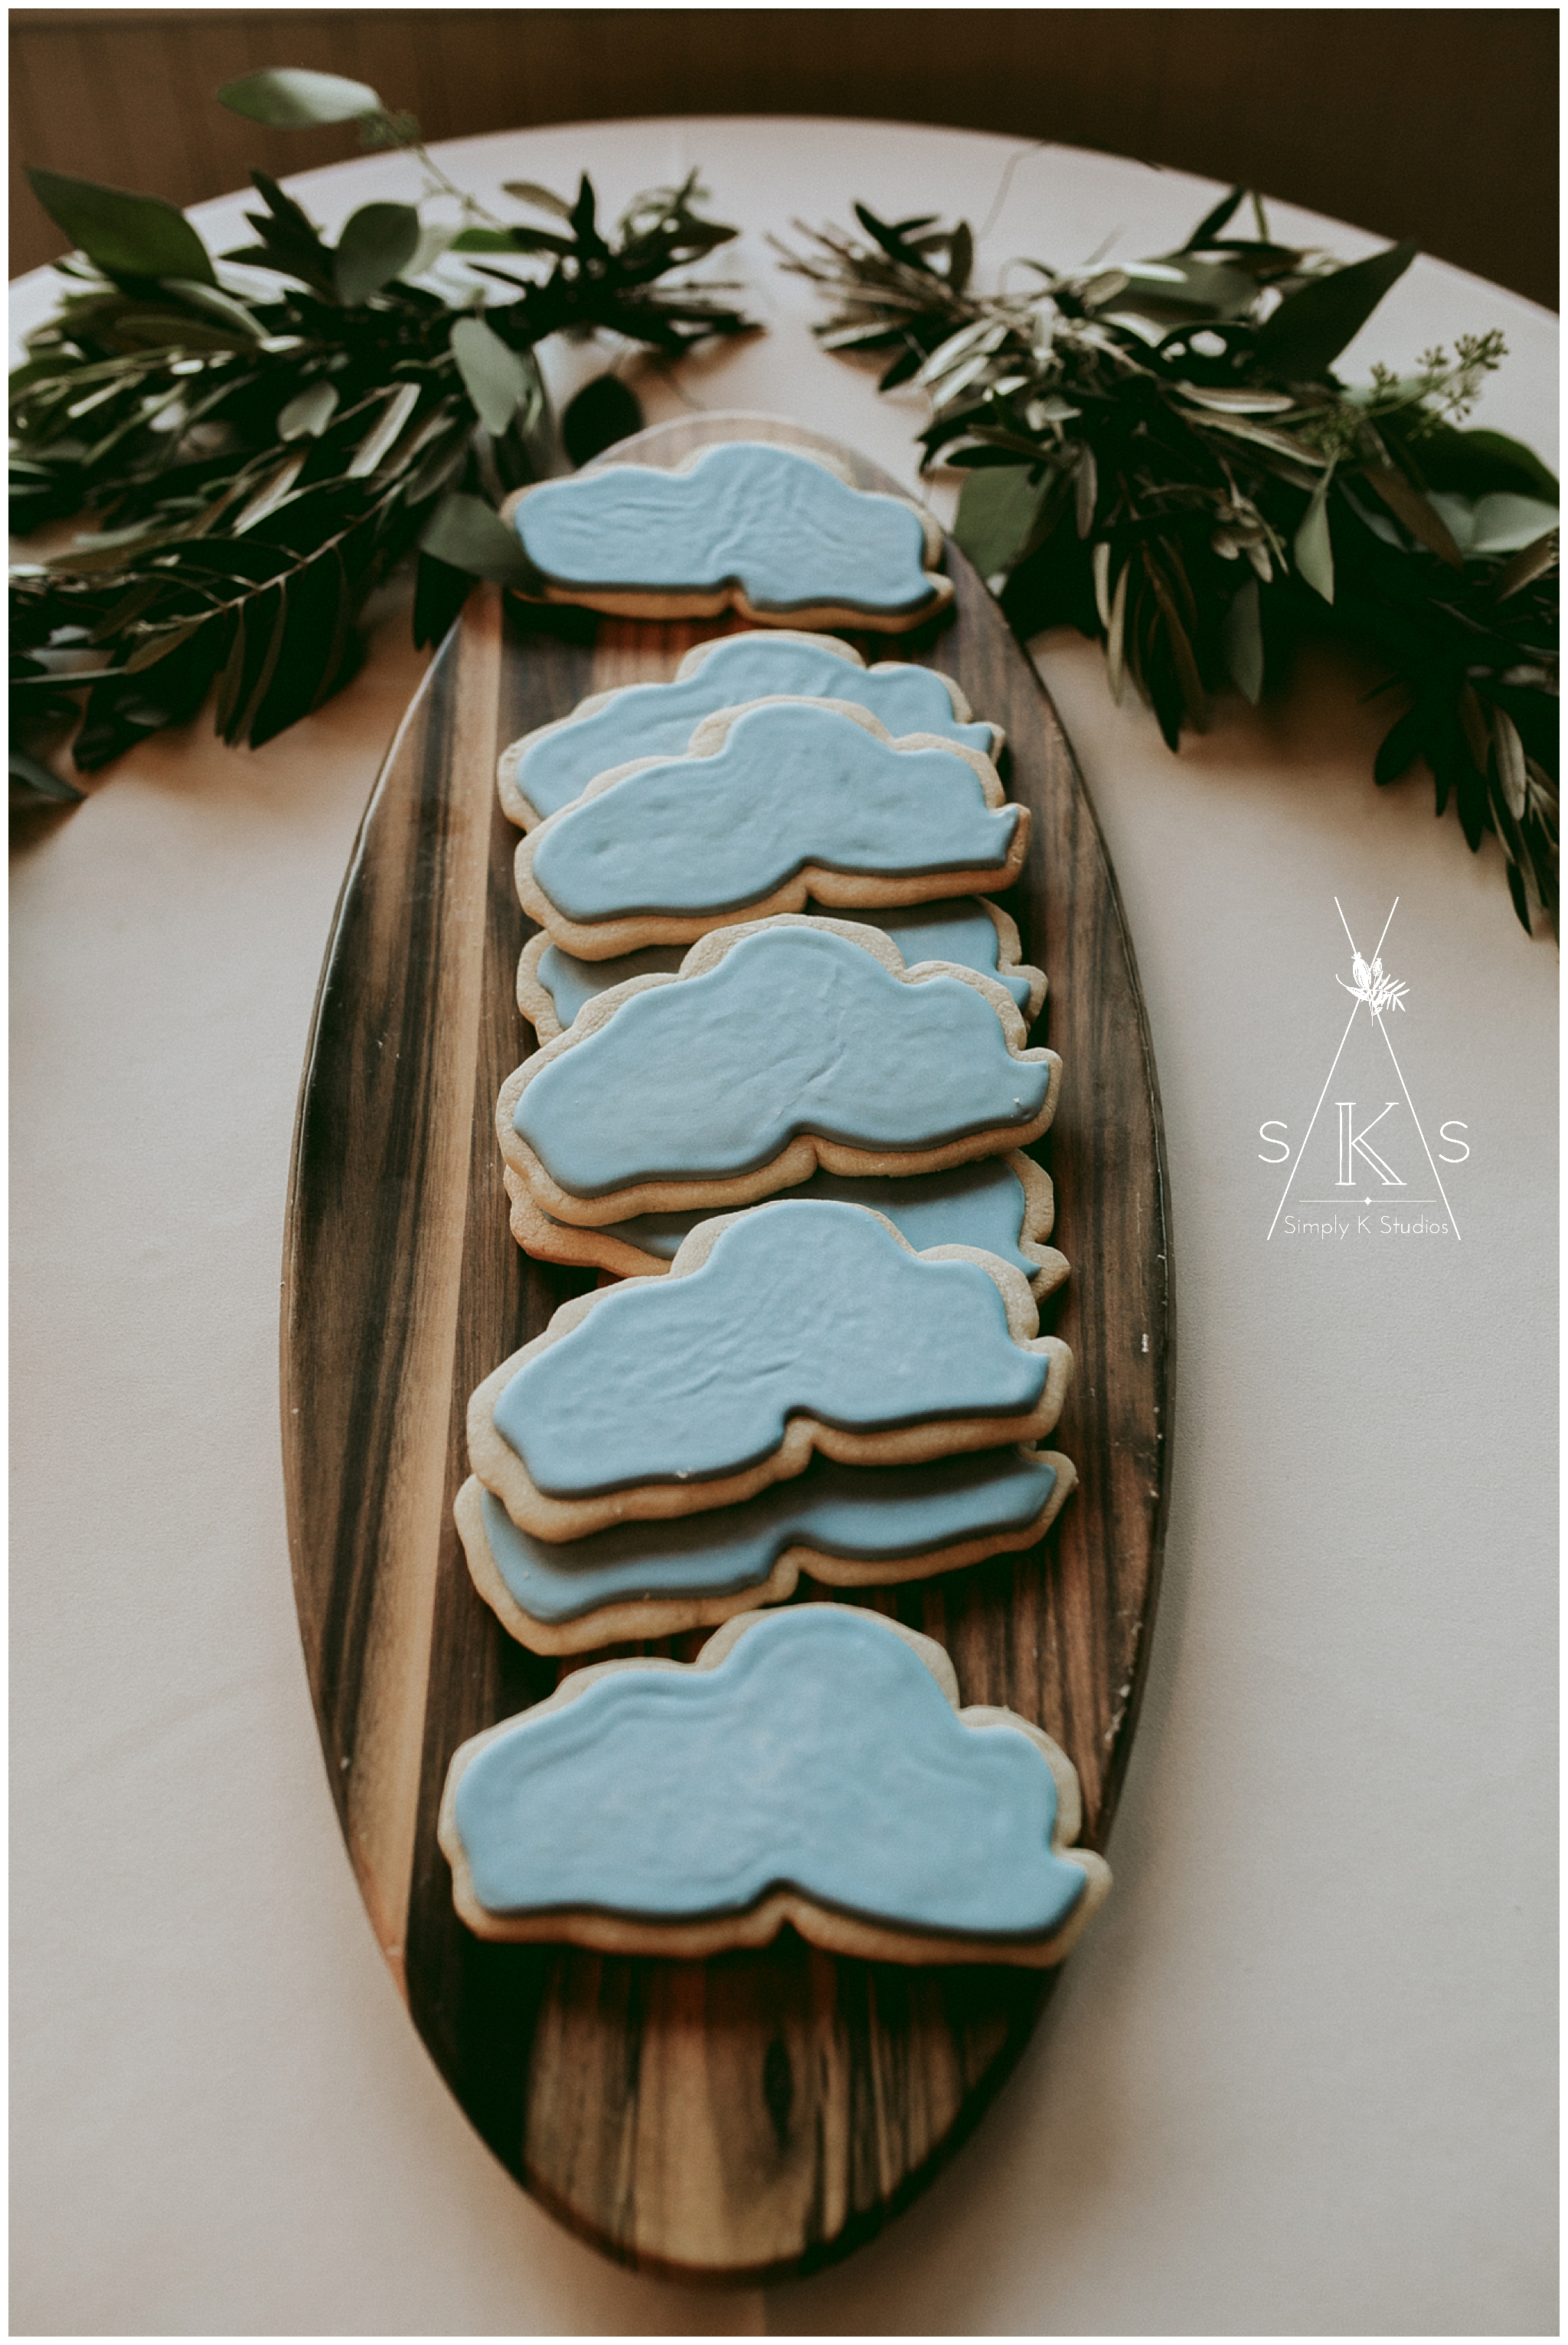 103 Custom Cookies near Lake Tahoe.jpg